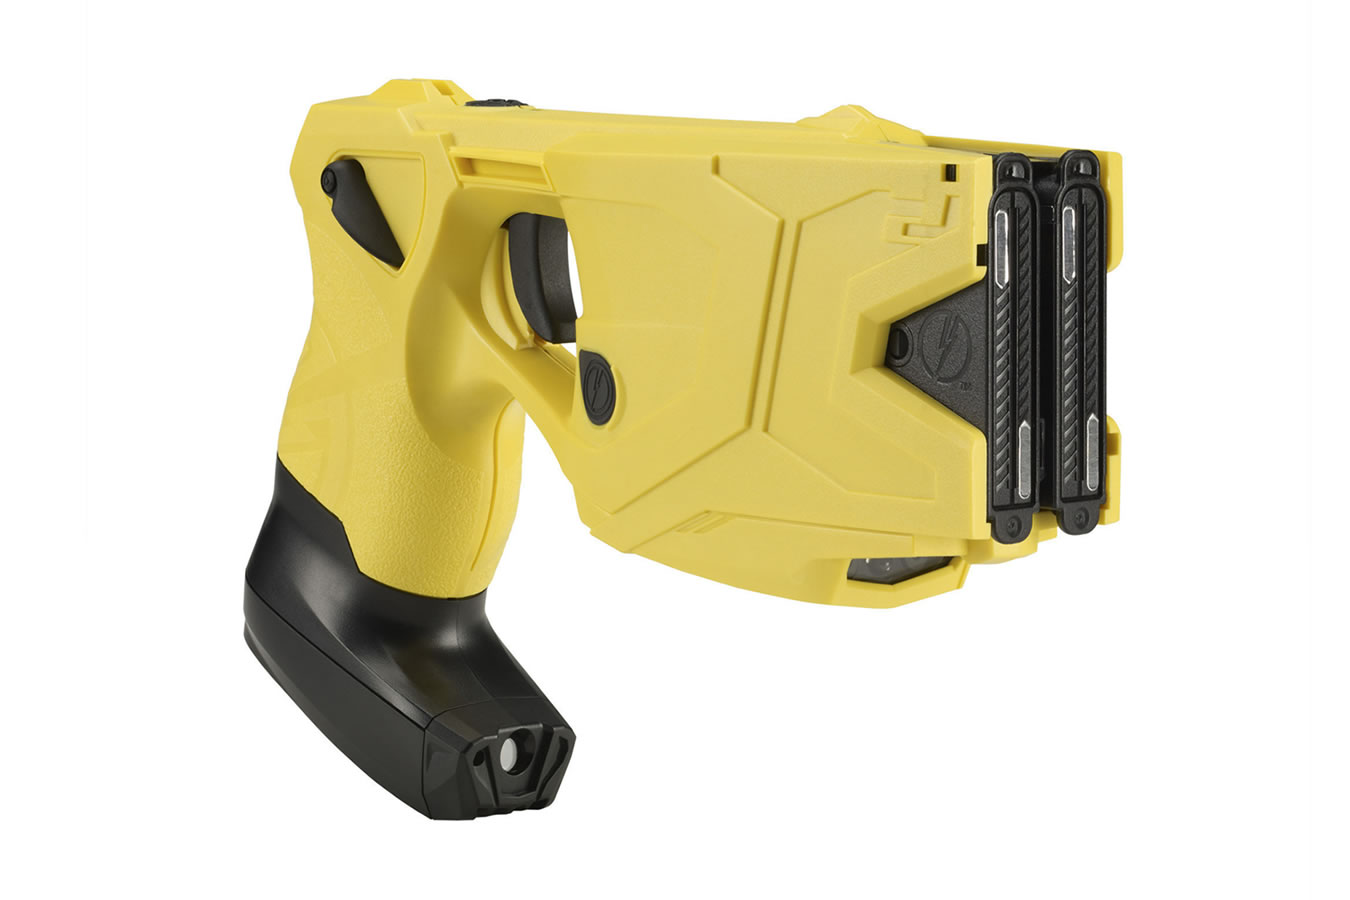 X2 YELLOW HANDLE ONLY